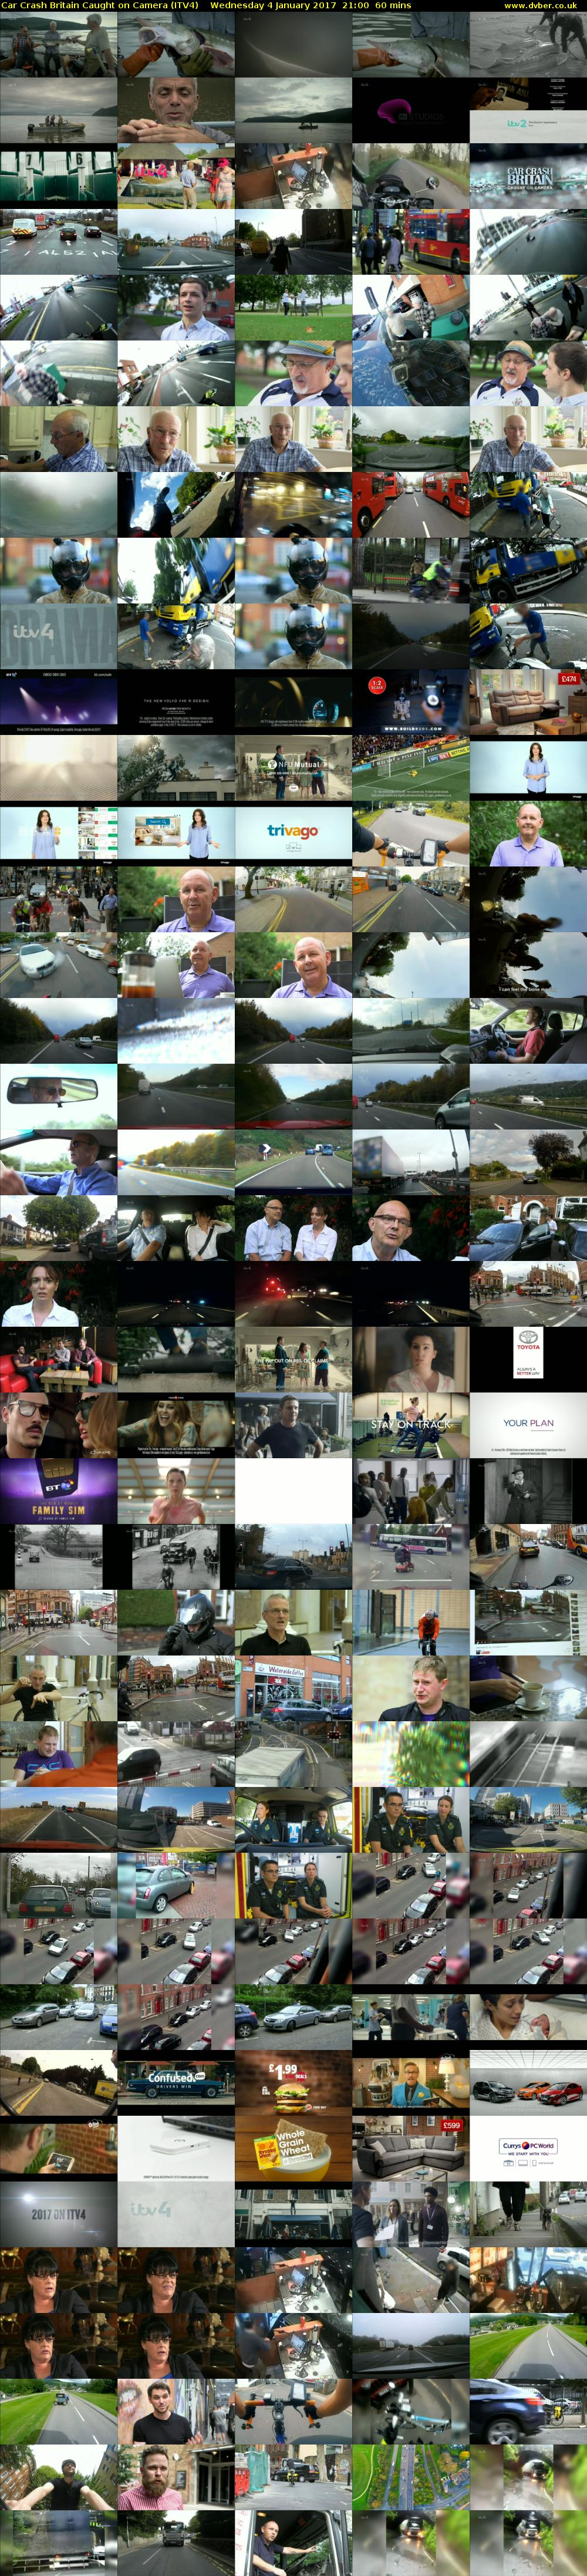 Car Crash Britain Caught on Camera (ITV4) Wednesday 4 January 2017 21:00 - 22:00